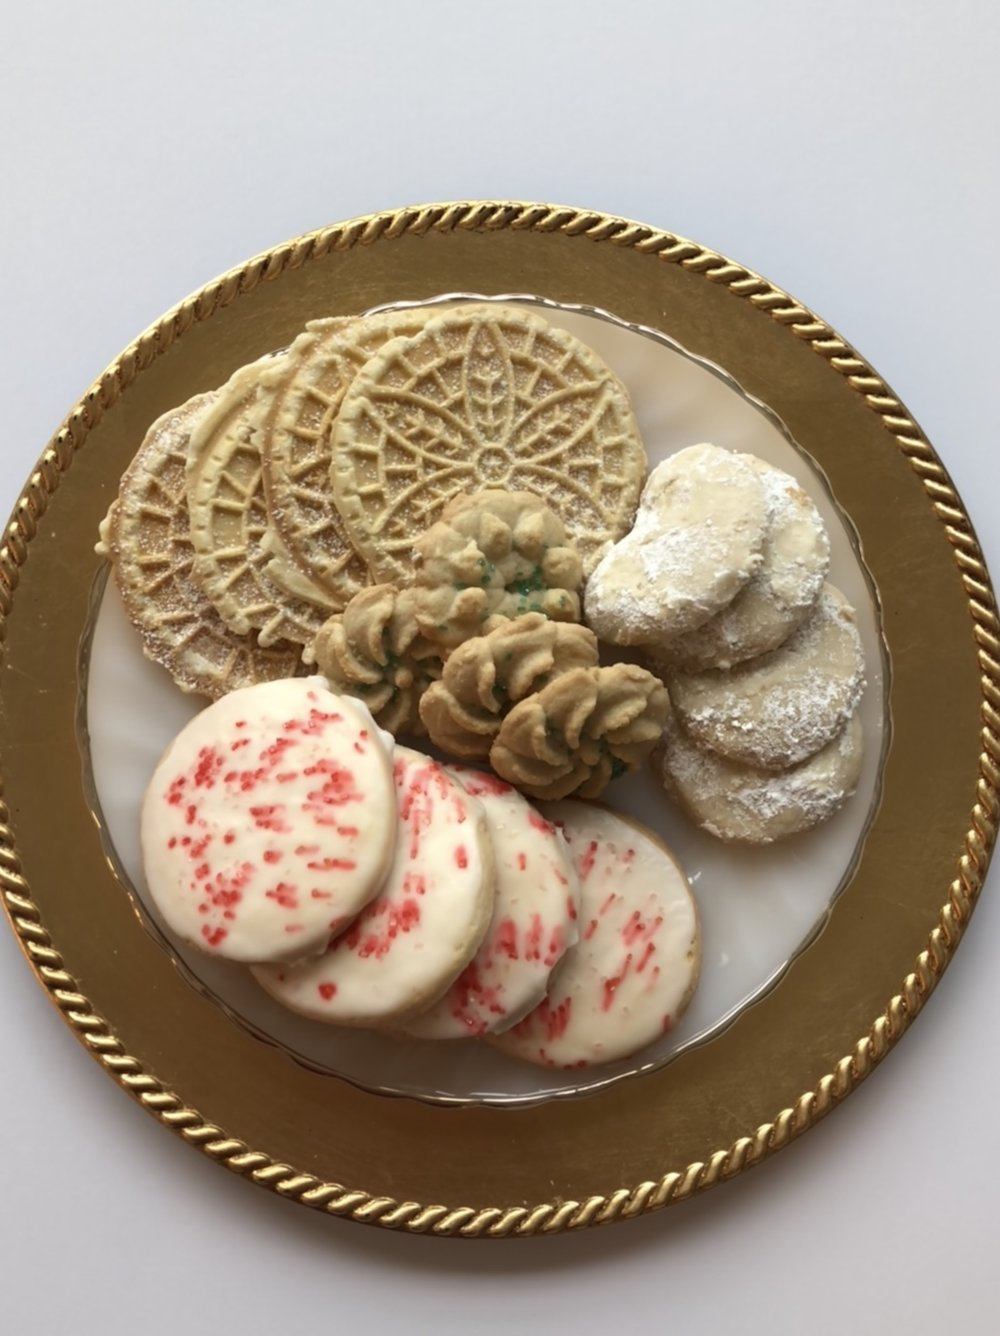 Seasonal Gluten & Dairy Free Assorted Christmas Cookies  $12 (16 cookies)